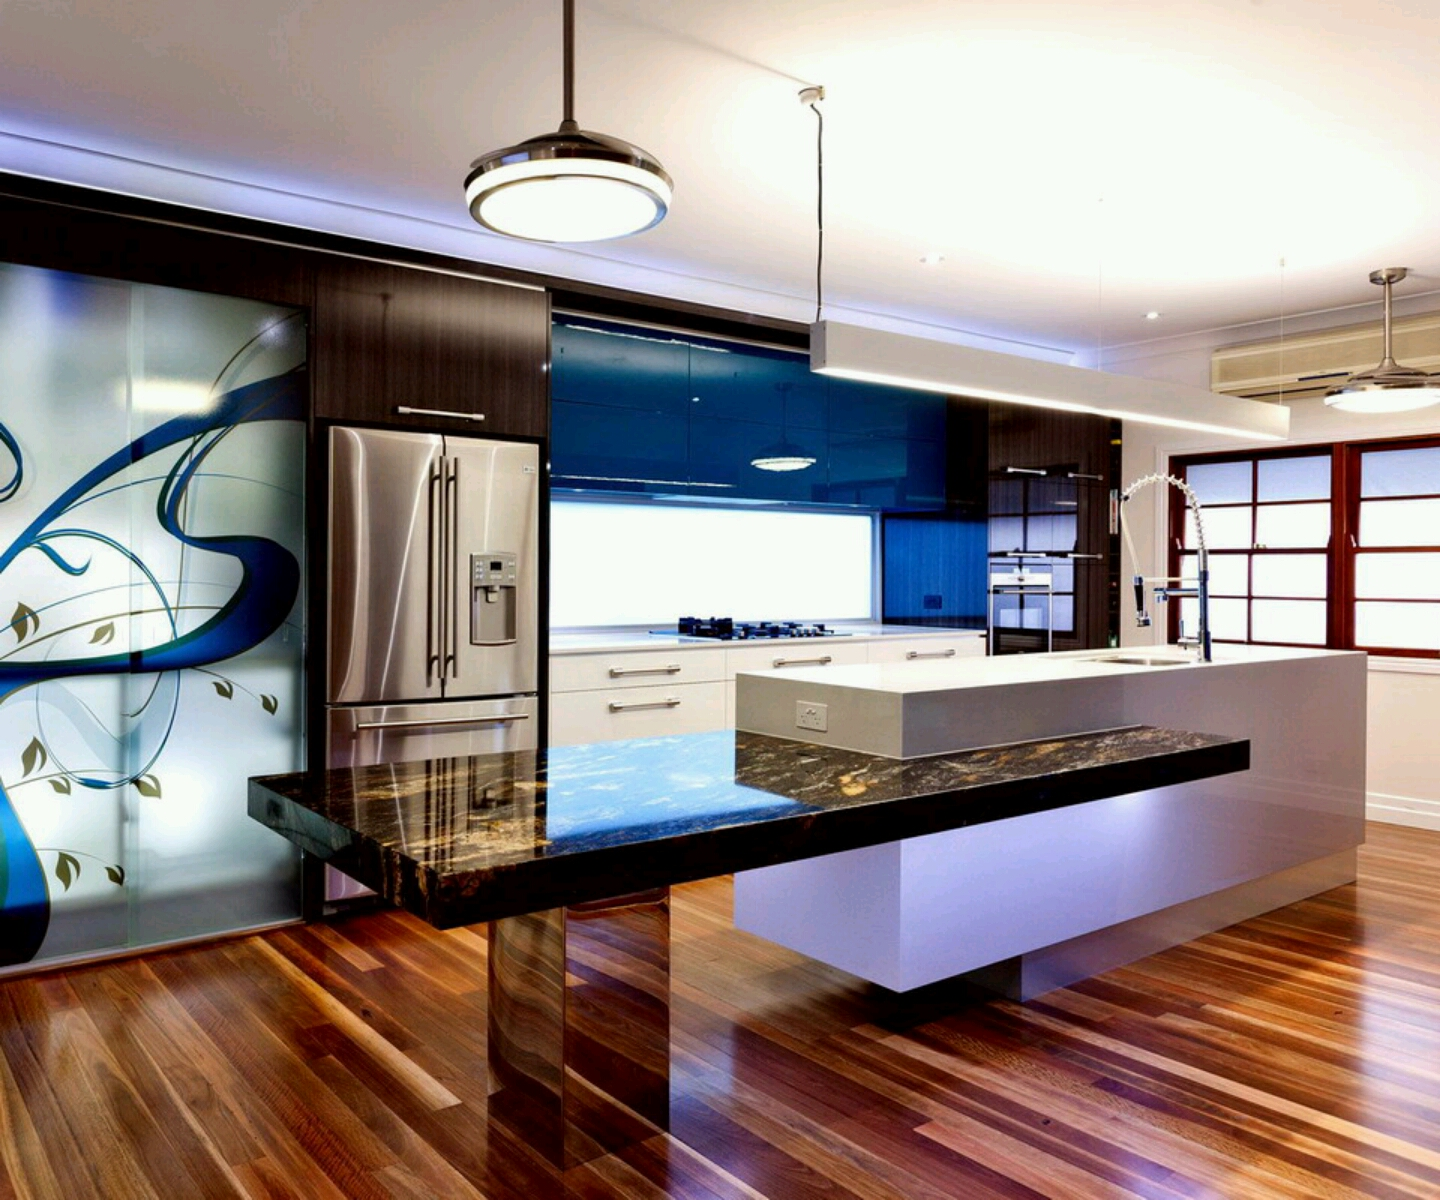 Ultra modern kitchen designs ideas for Contemporary kitchen design ideas